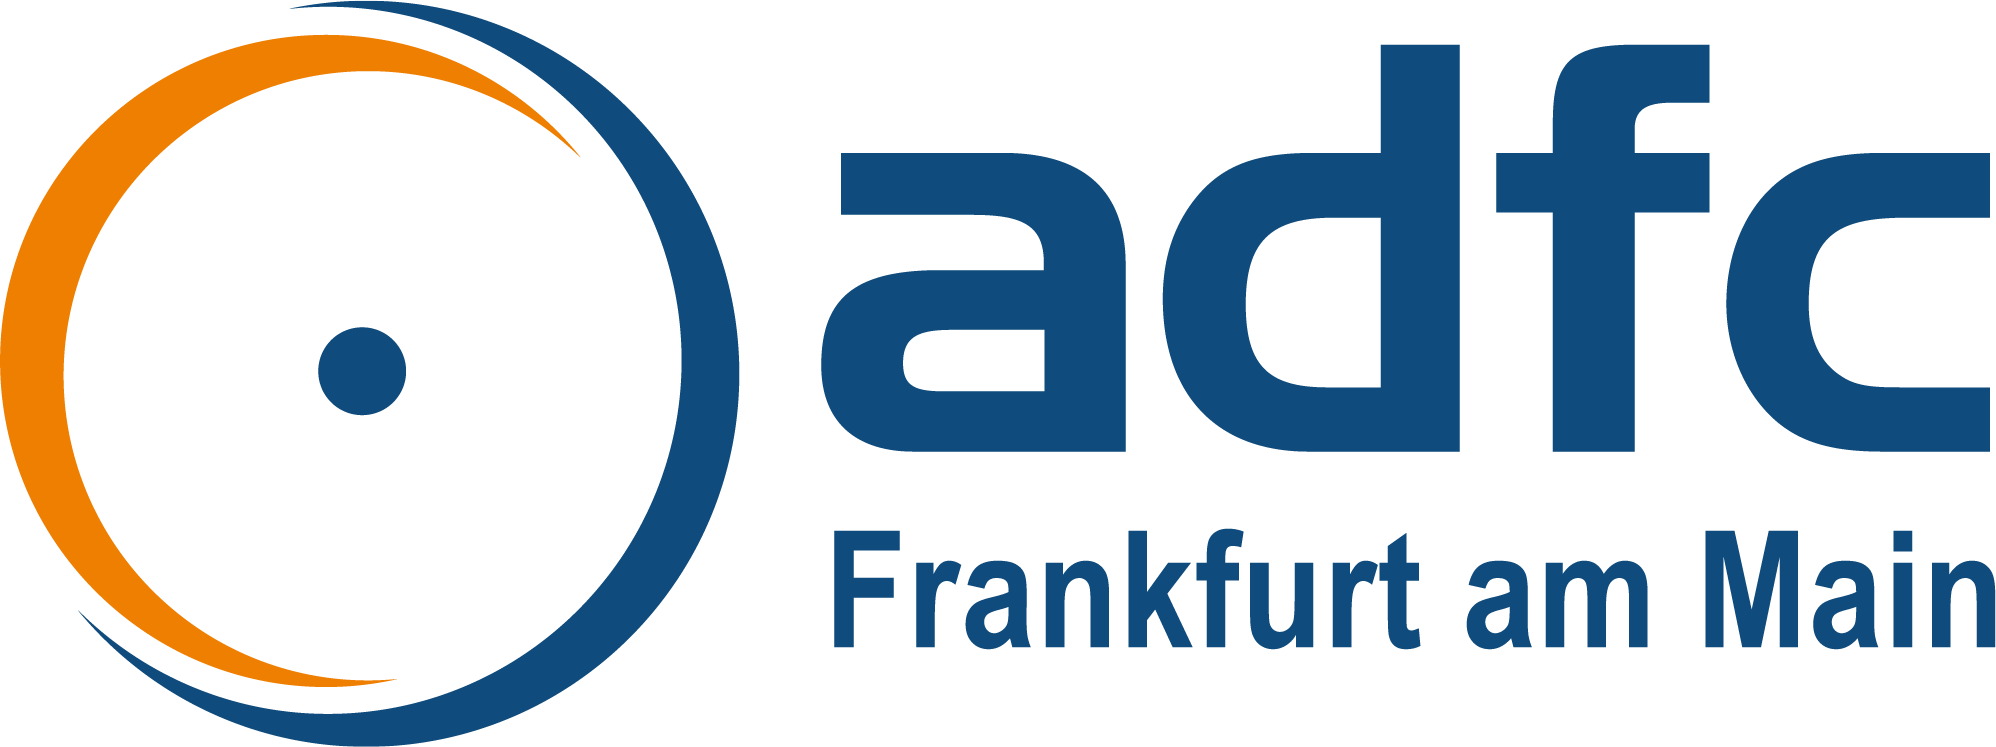 ADFC Frankfurt am Main